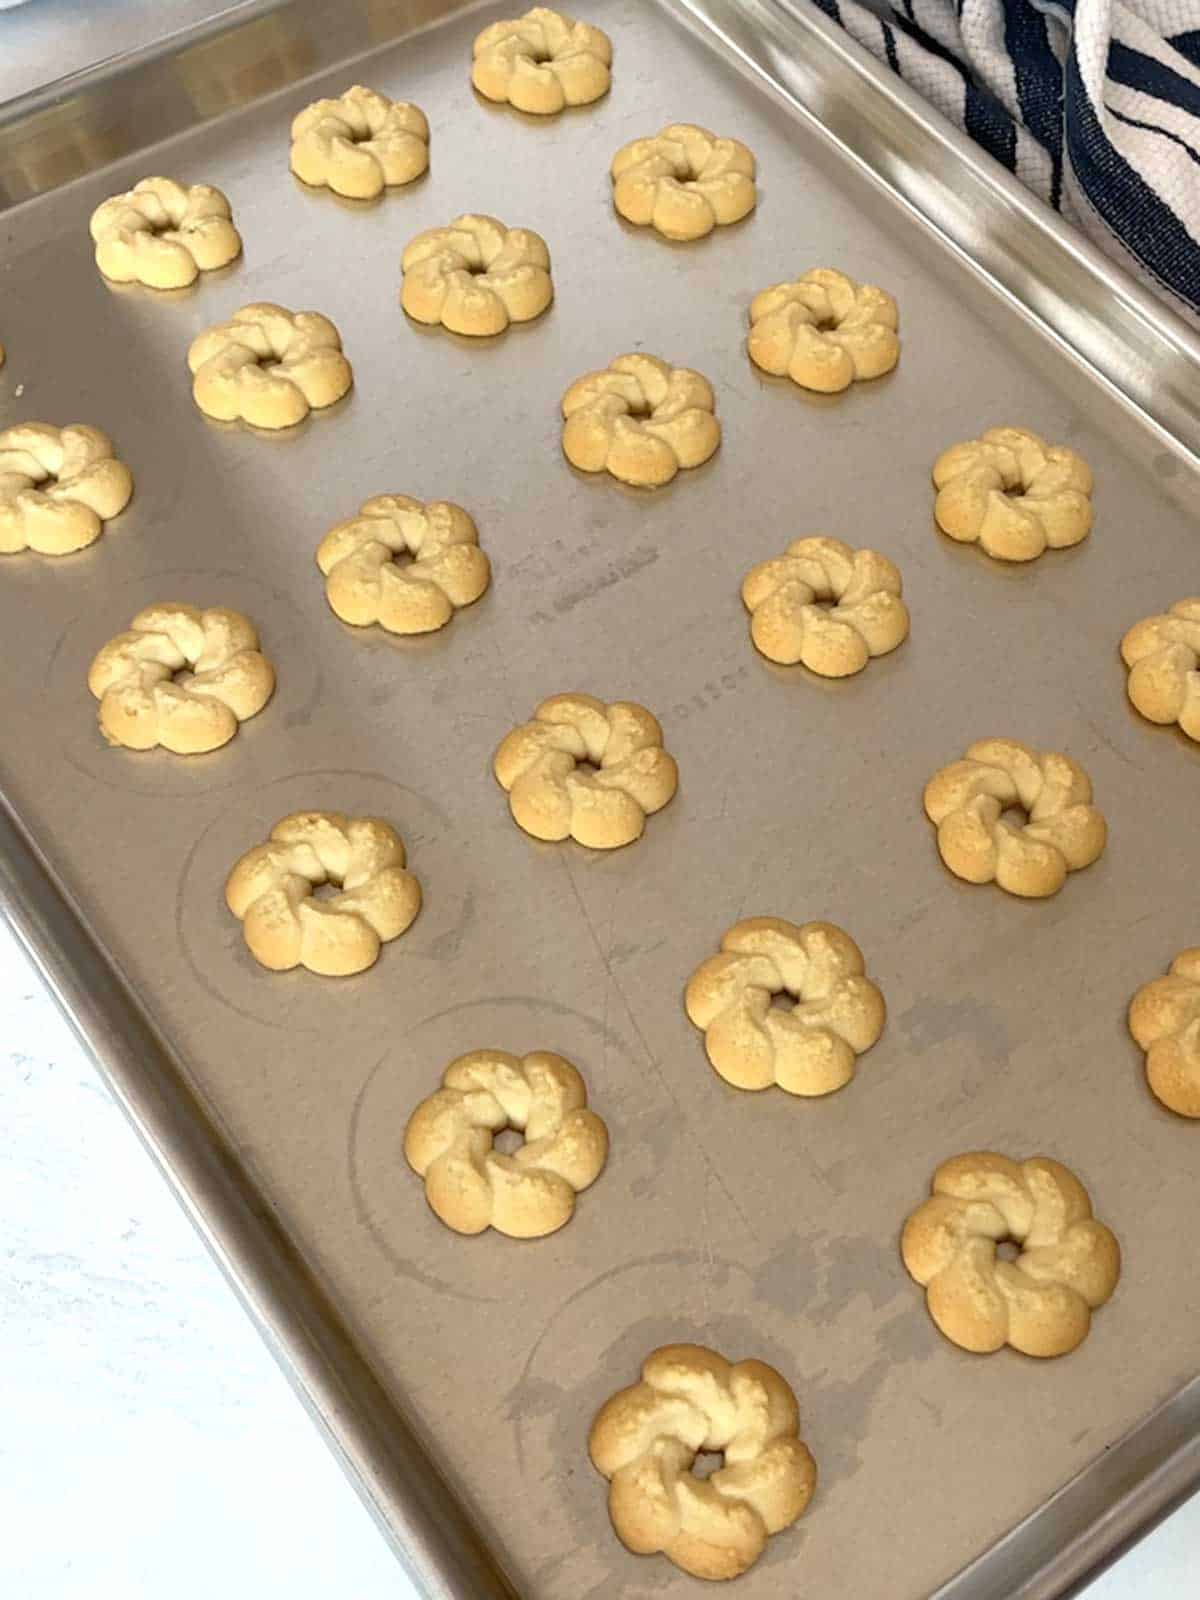 Cookies out of oven